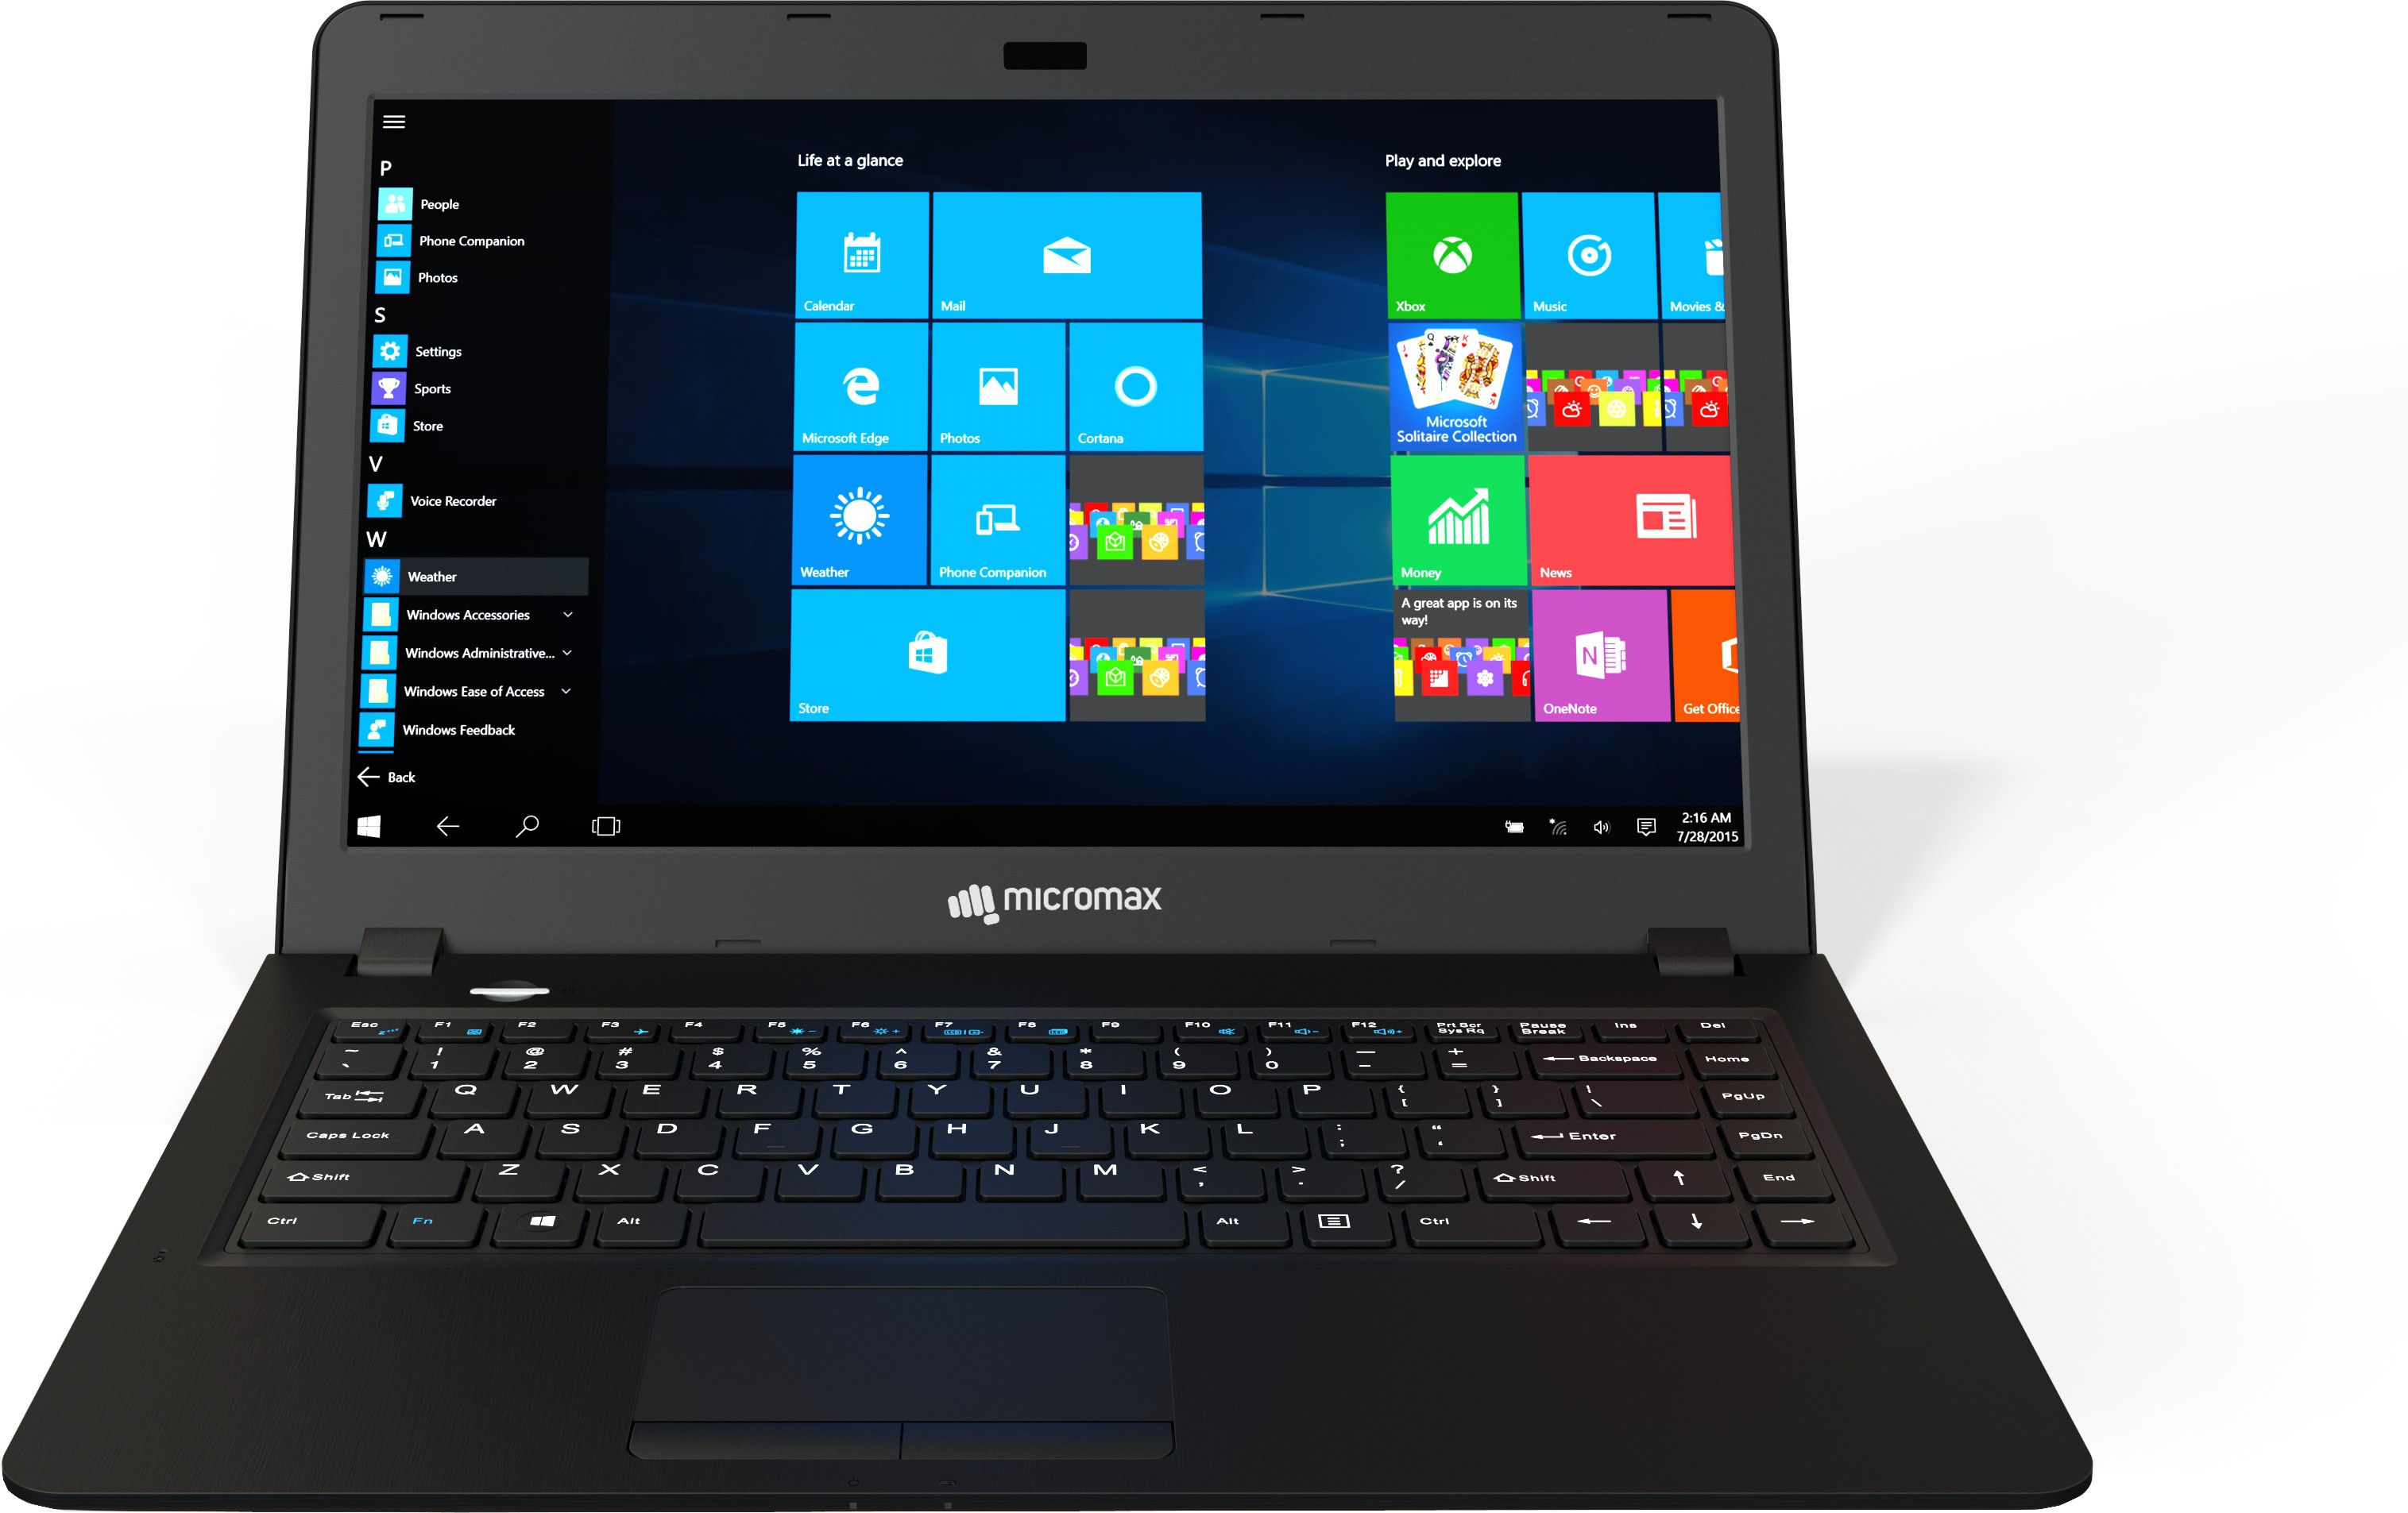 Deals - Jodhpur - Starting at Rs. 9999 <br> Value for Money Laptops<br> Category - computers<br> Business - Flipkart.com